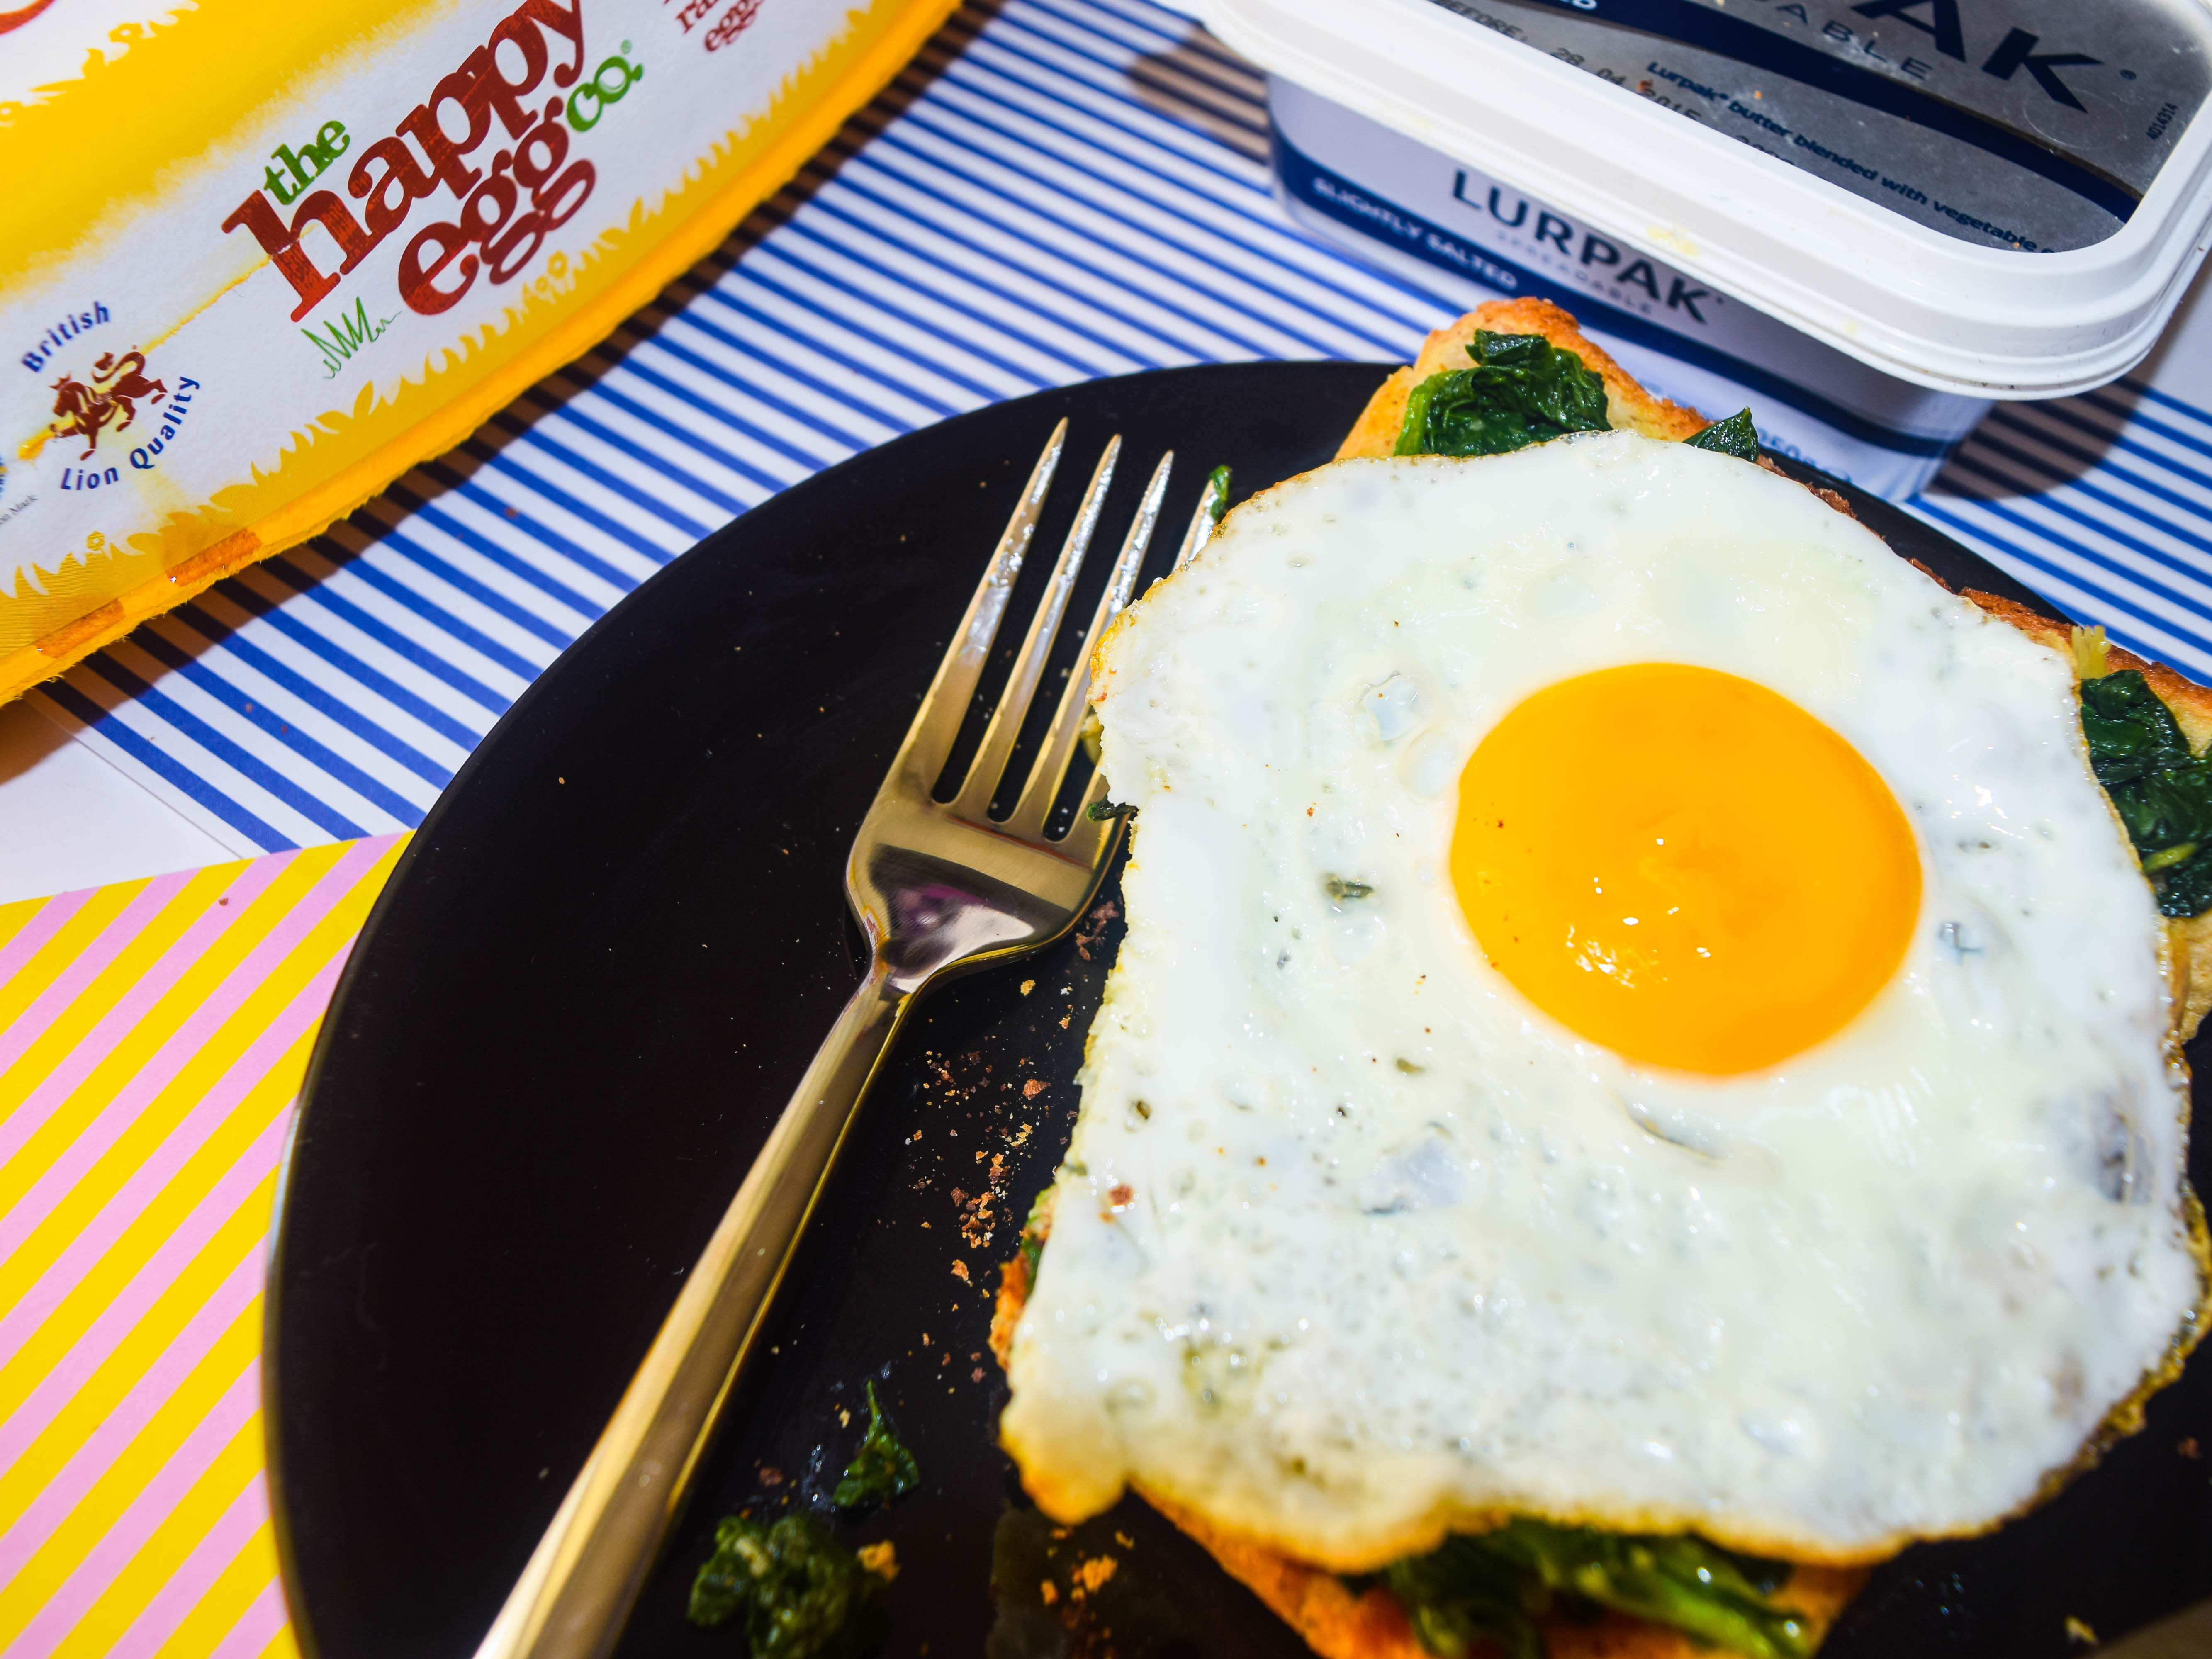 Kale, Spinach and Egg on Toast